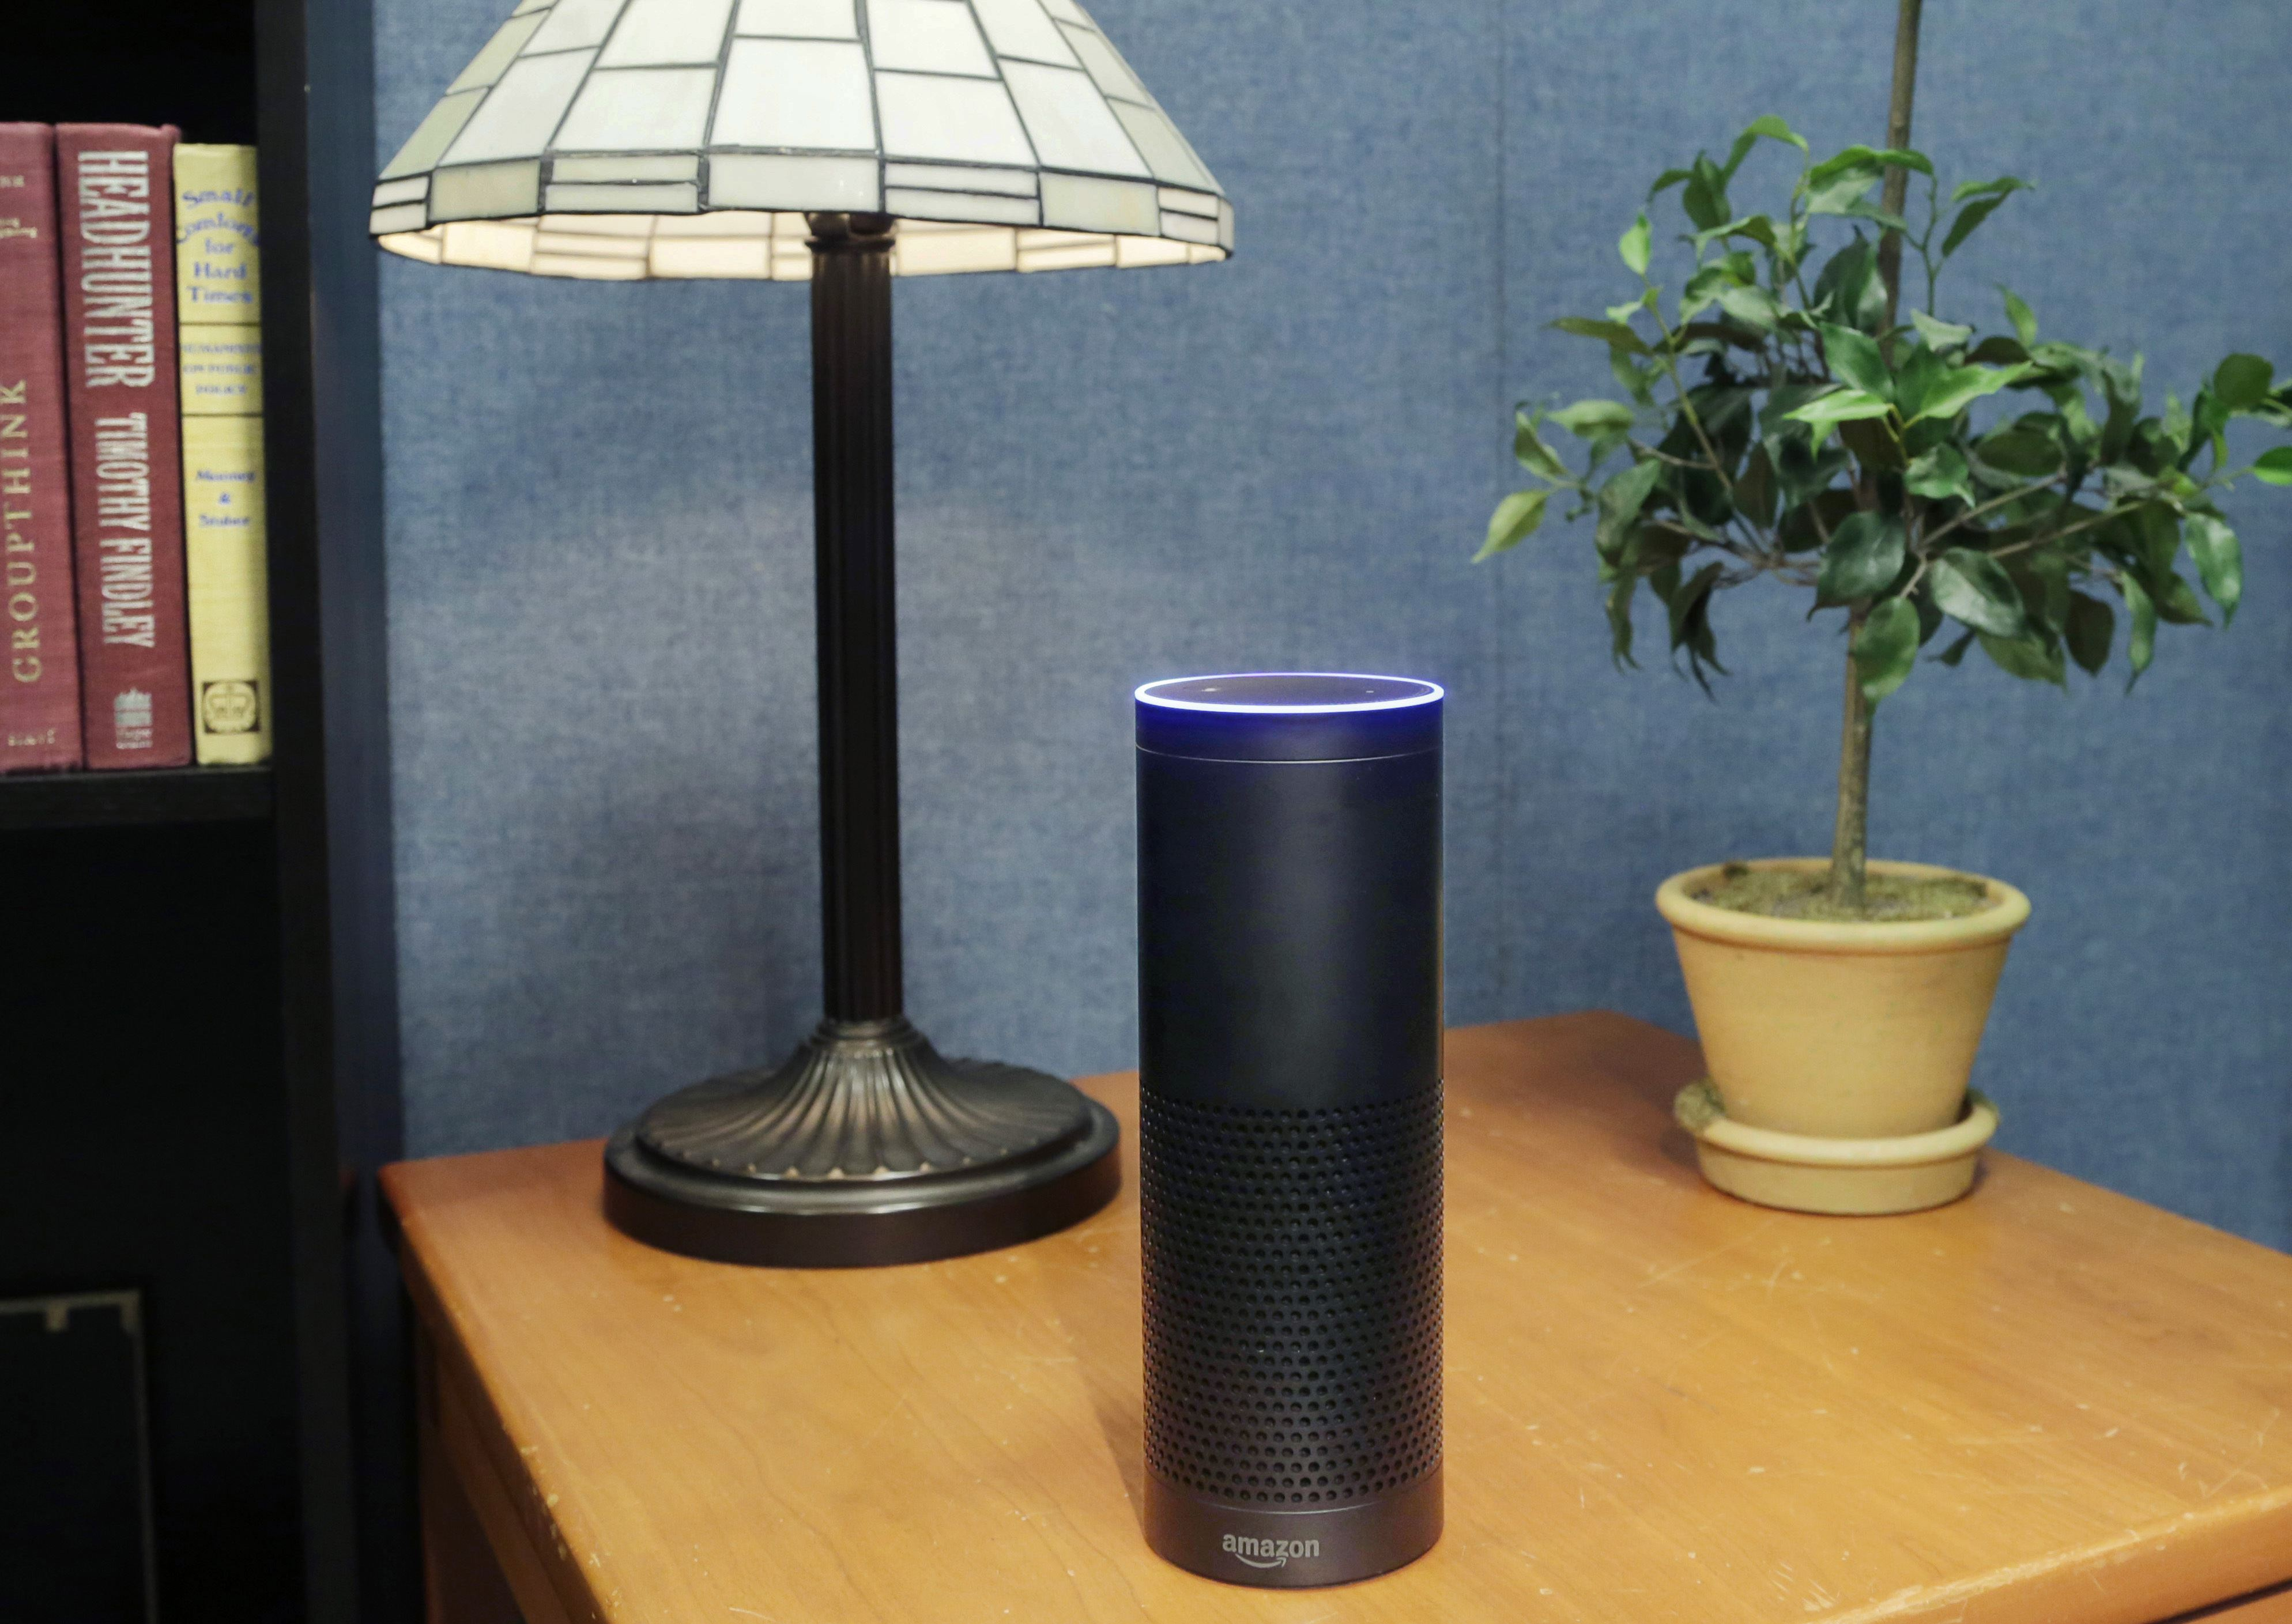 Amazon's Alexa Appears to Be Pulling a HAL 9000